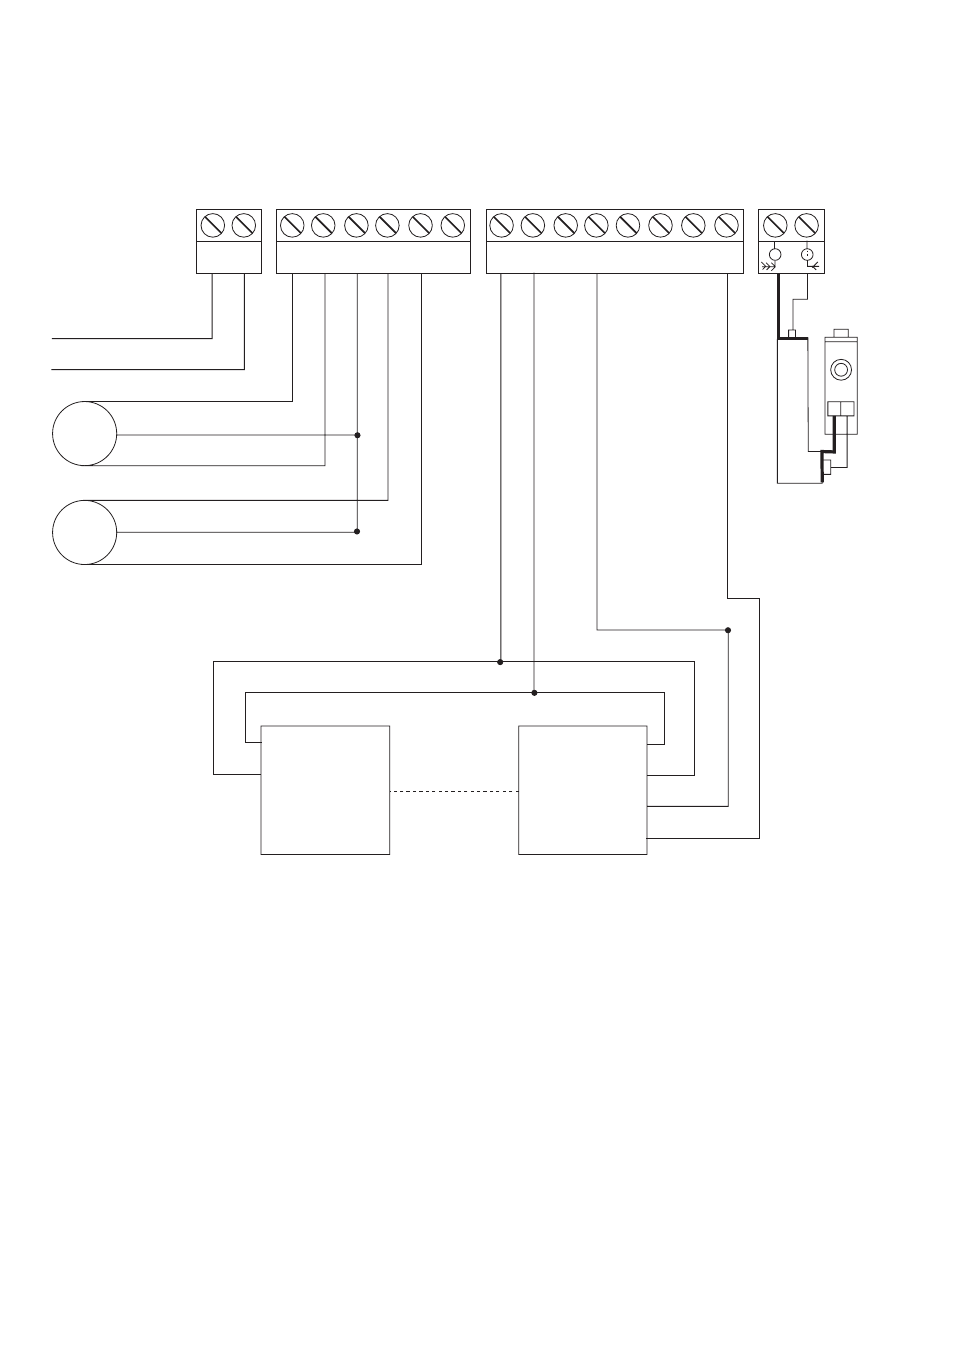 medium resolution of wiring diagram that came with kit wiring diagram blog wiring diagram that came with kit